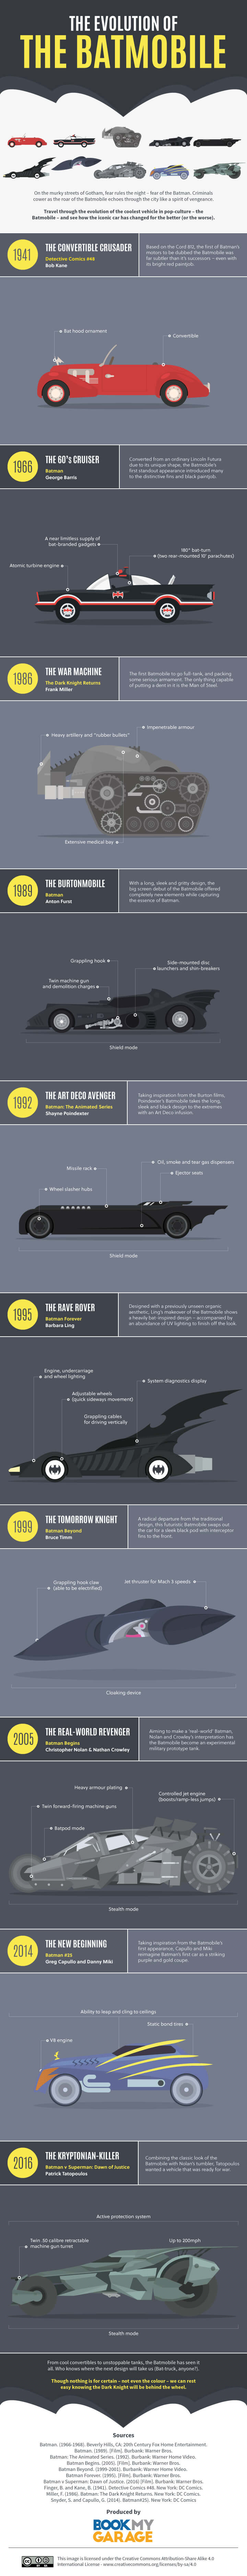 The Evolution of the Batmobile by Book my Garage